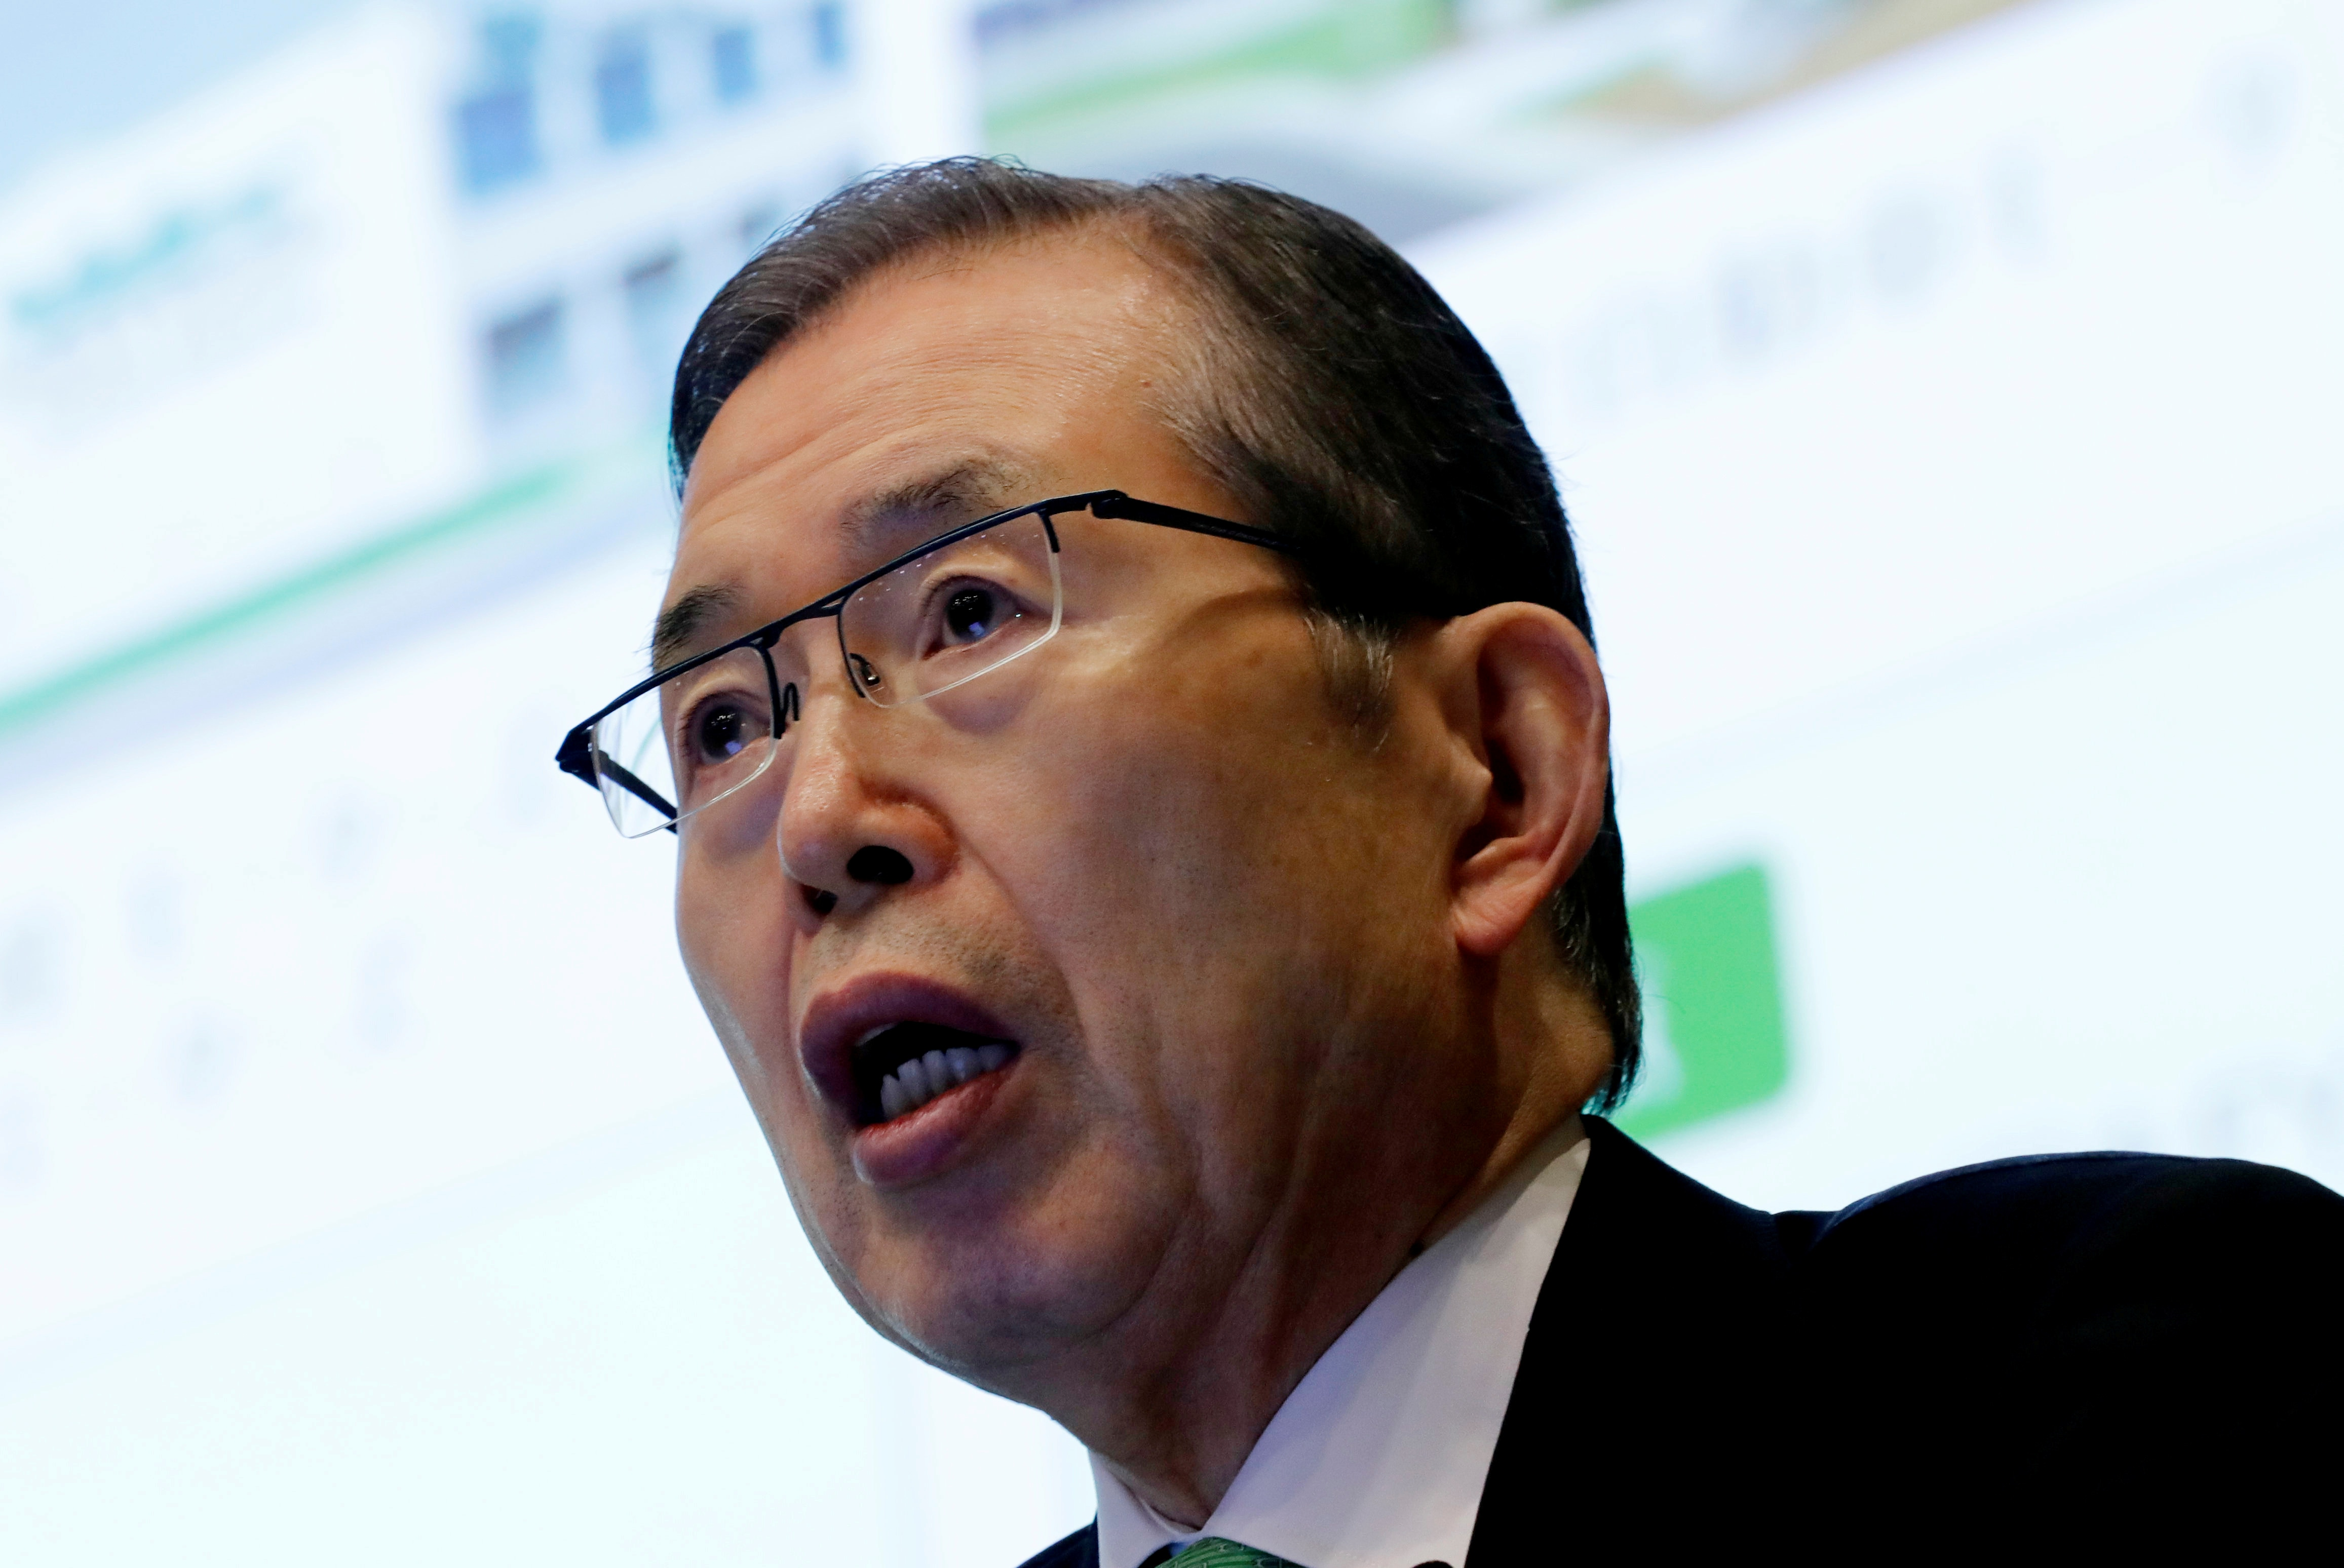 FILE PHOTO: Nidec Corp' s CEO Shigenobu Nagamori speaks at an earnings results news conference in Tokyo, Japan, July 25, 2018. REUTERS/Kim Kyung-Hoon/File Photo